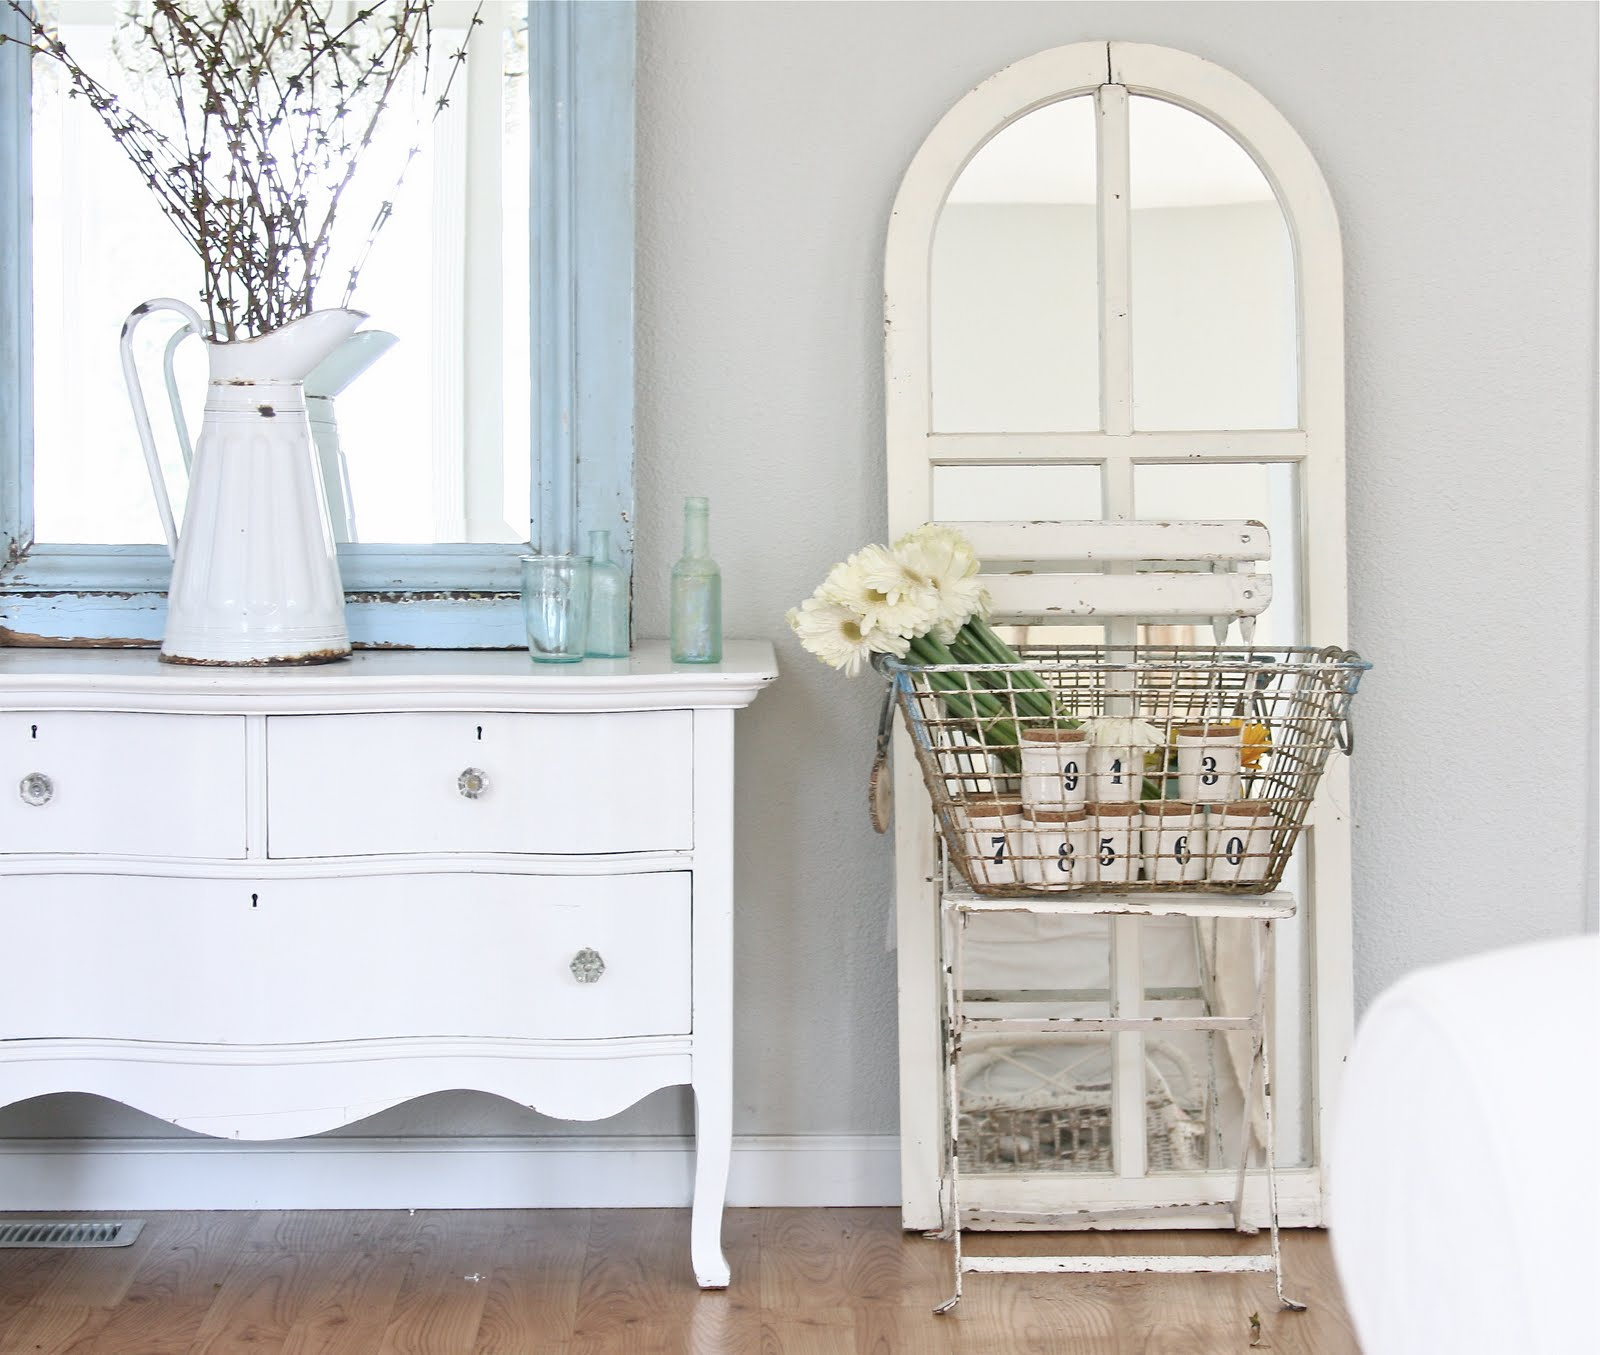 Shabby Chic Interior Design Style. Vintage styled table and the basket for the stuff and flowers